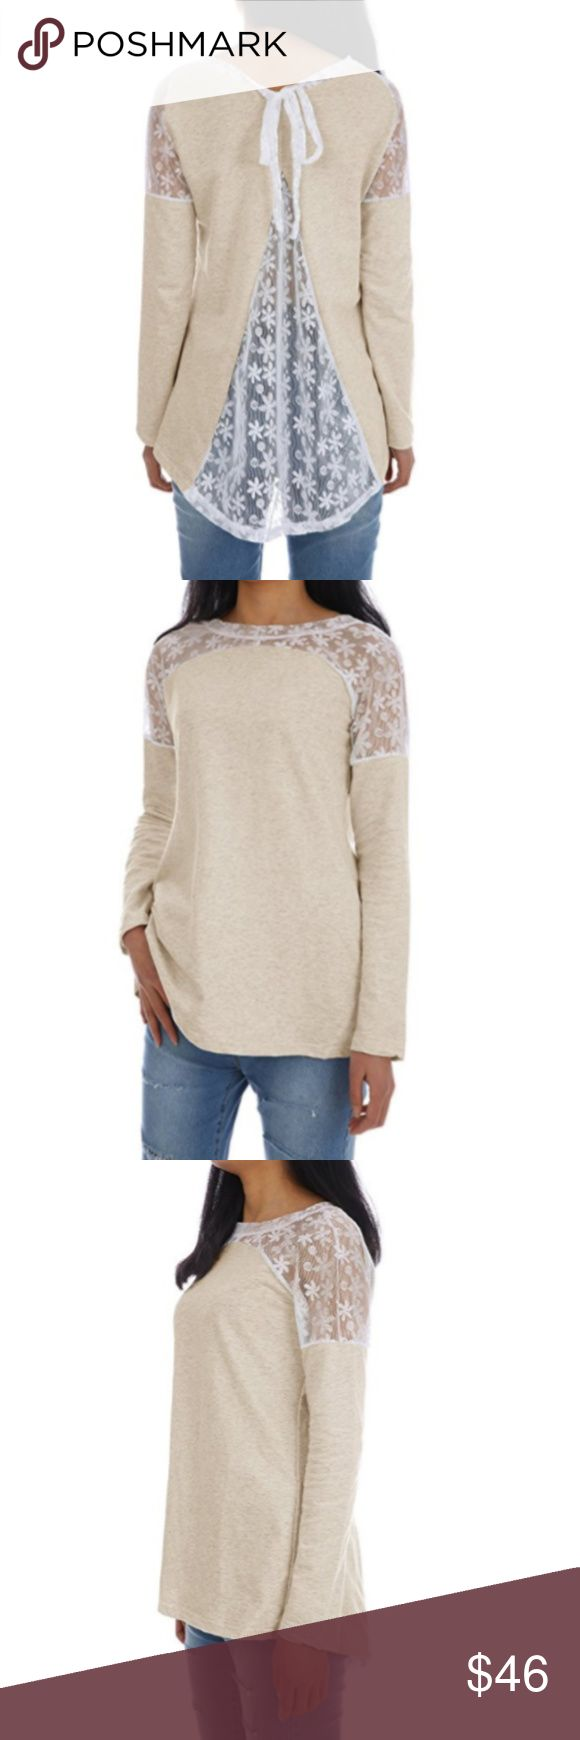 Cream and White Lace Backless Long Sleeve Top Cream long sleeve top with lace backless detailing. Tie neck.  Material: cotton / polyester Small:              Waist: 26-27        Bust: 34-35  Medium:         Waist: 28-29        Bust: 36-37  Large:             Waist:30.5-32      Bust: 38.5-40  XL:                  Waist: 33.5-35     Bust: 41.5-43  XXL:                Waist: 37              Bust: 45 Tops Tees - Long Sleeve